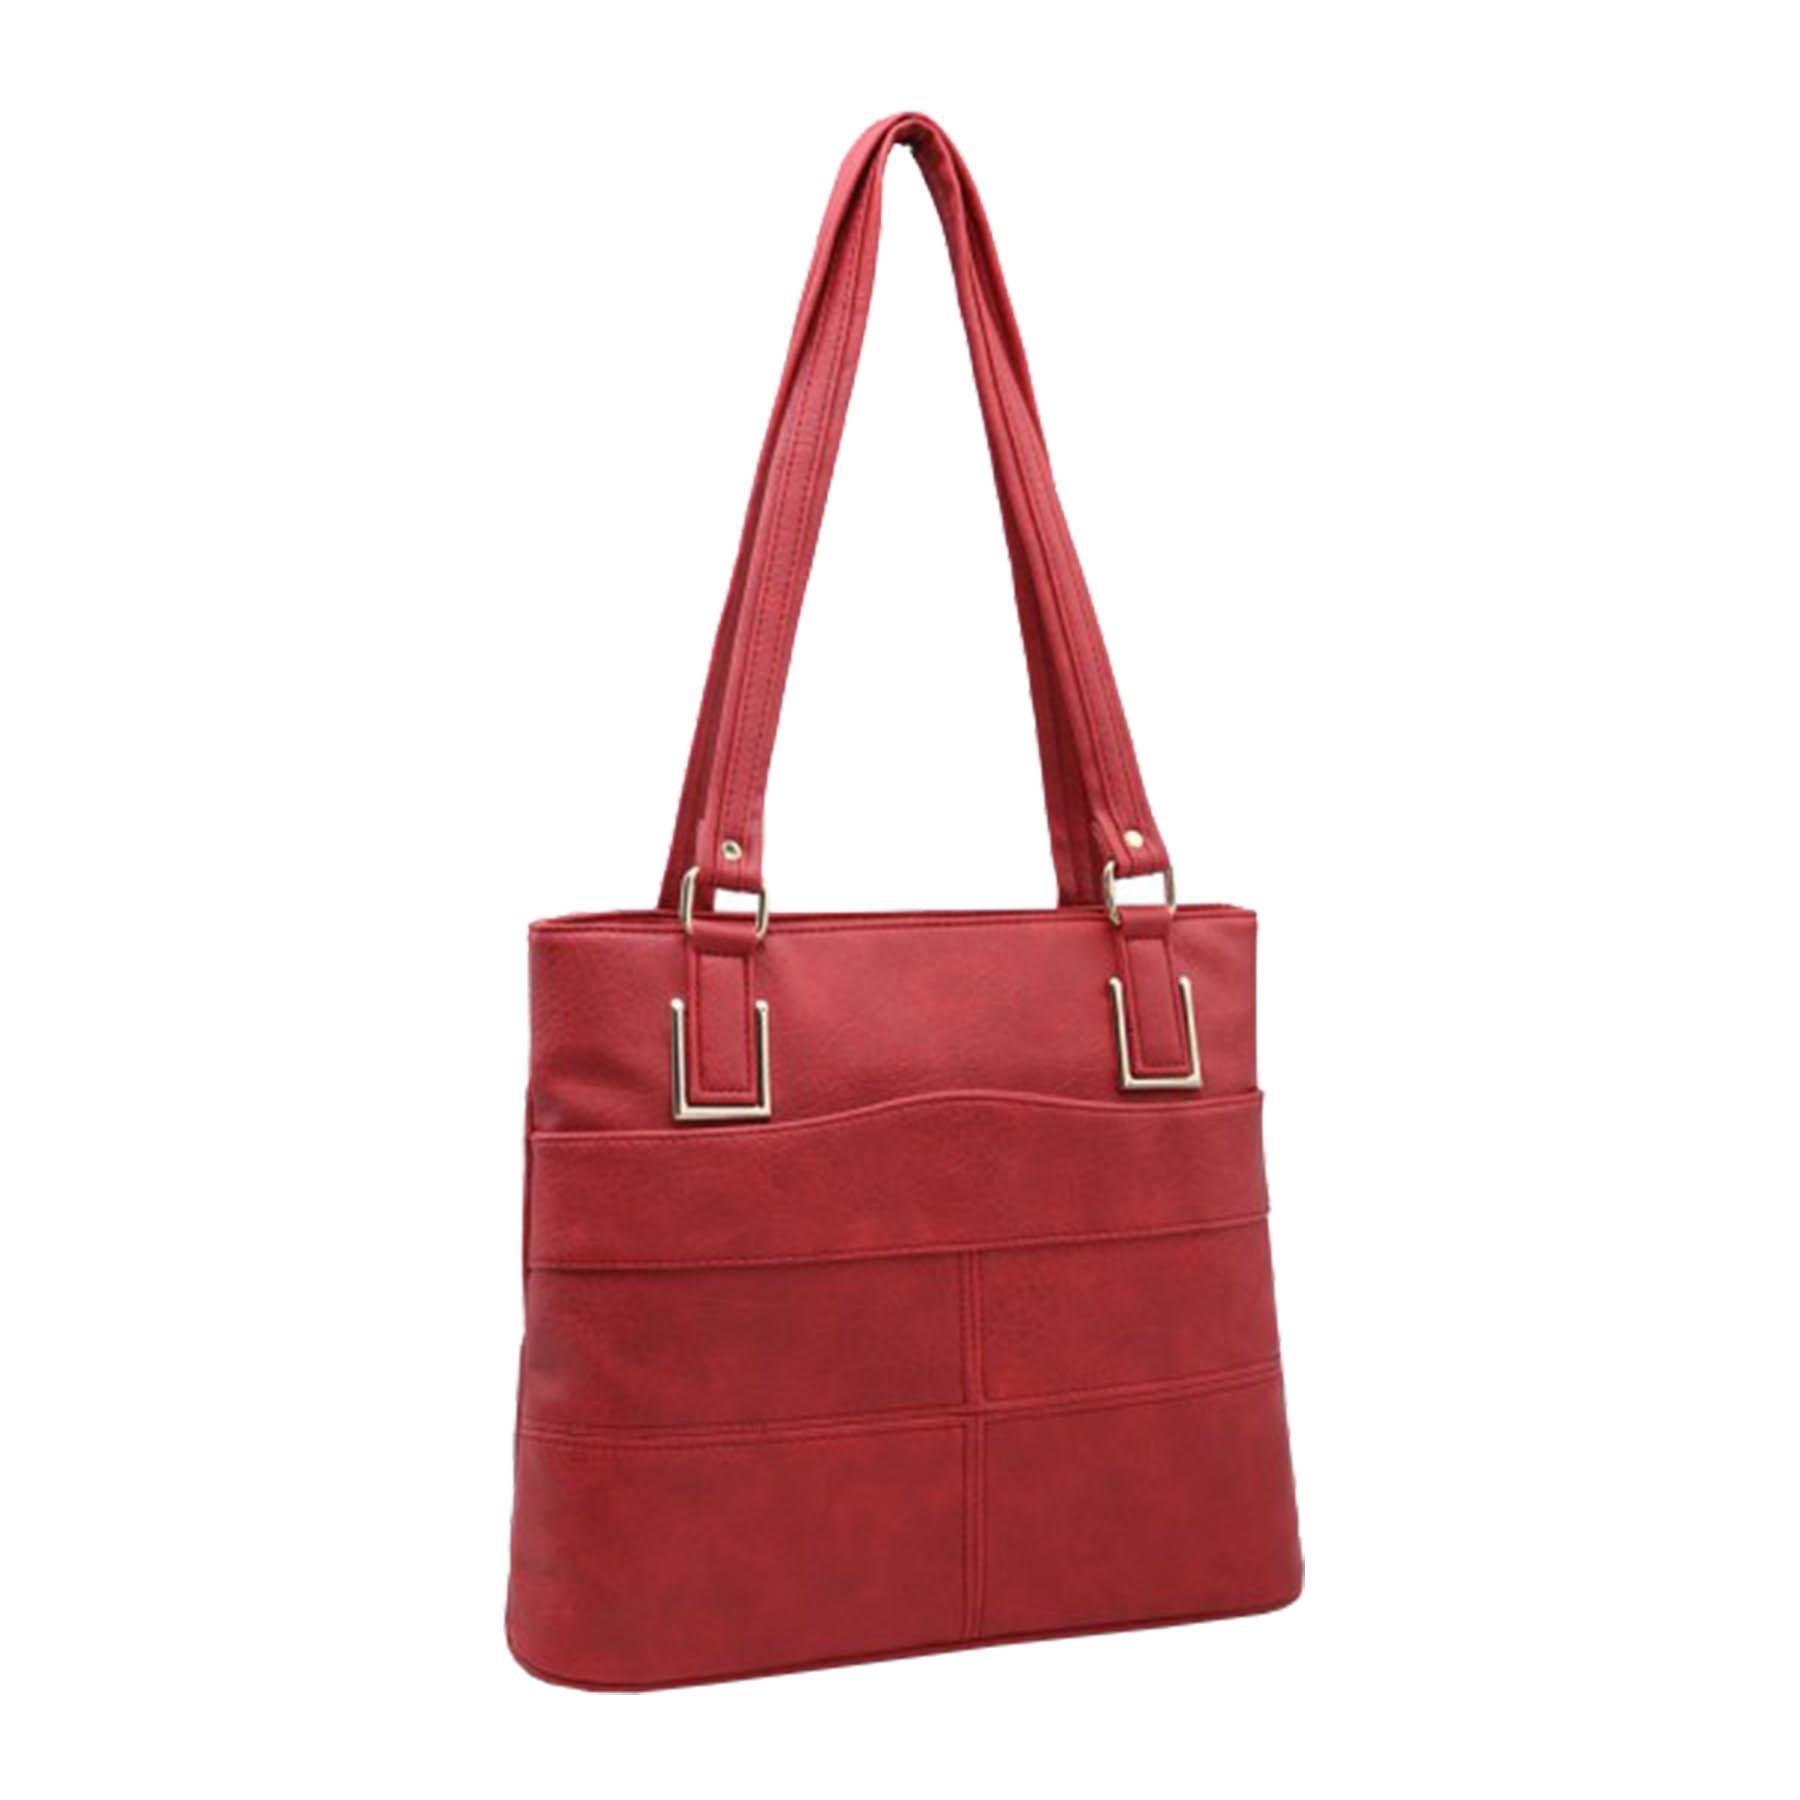 New-Panel-Design-Synthetic-Leather-Simple-Shoulder-Shopper-Tote-Bag thumbnail 10